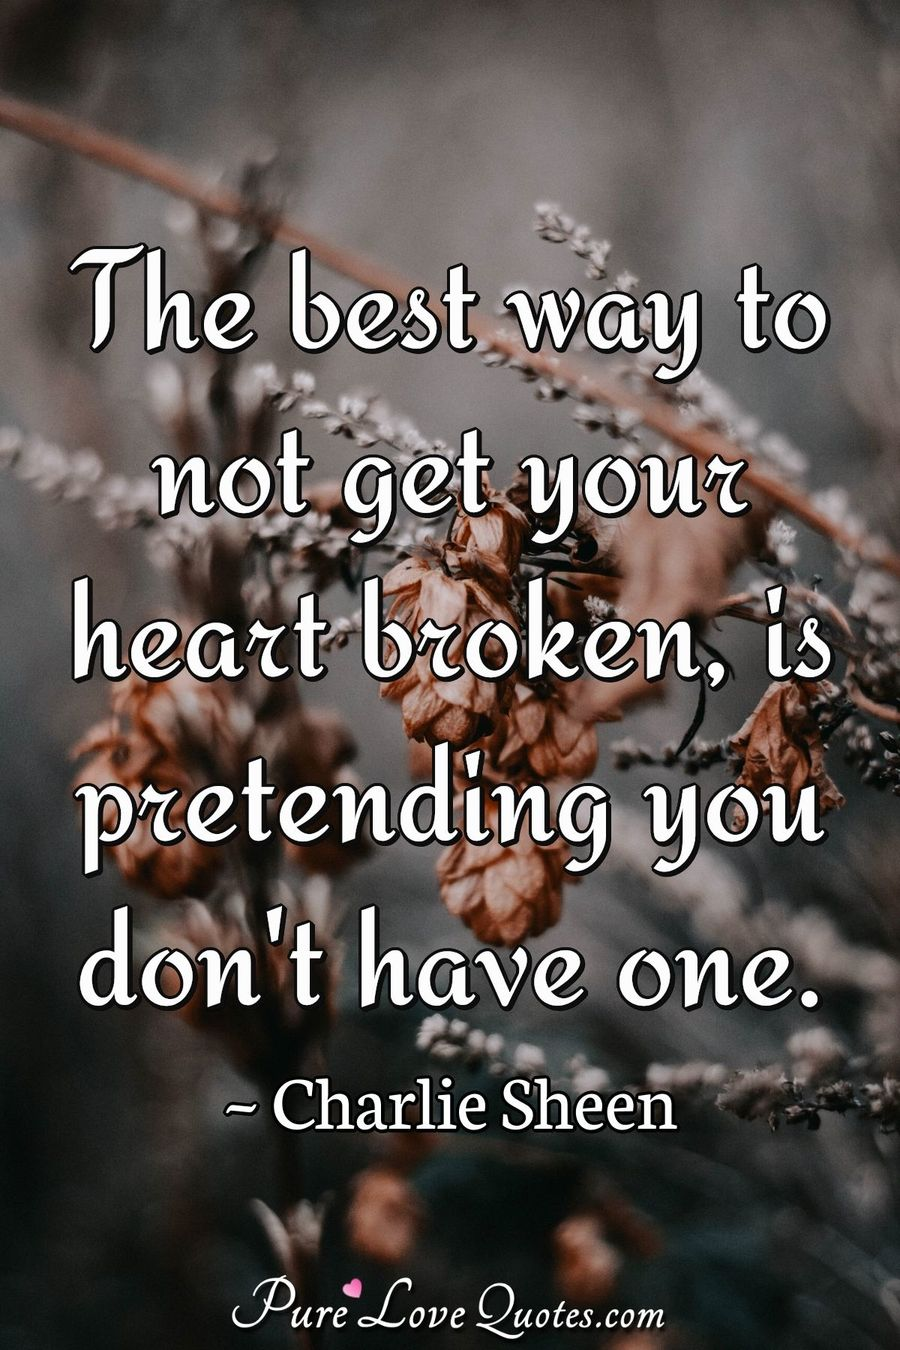 The best way to not get your heart broken, is pretending you don't have one. - Charlie Sheen